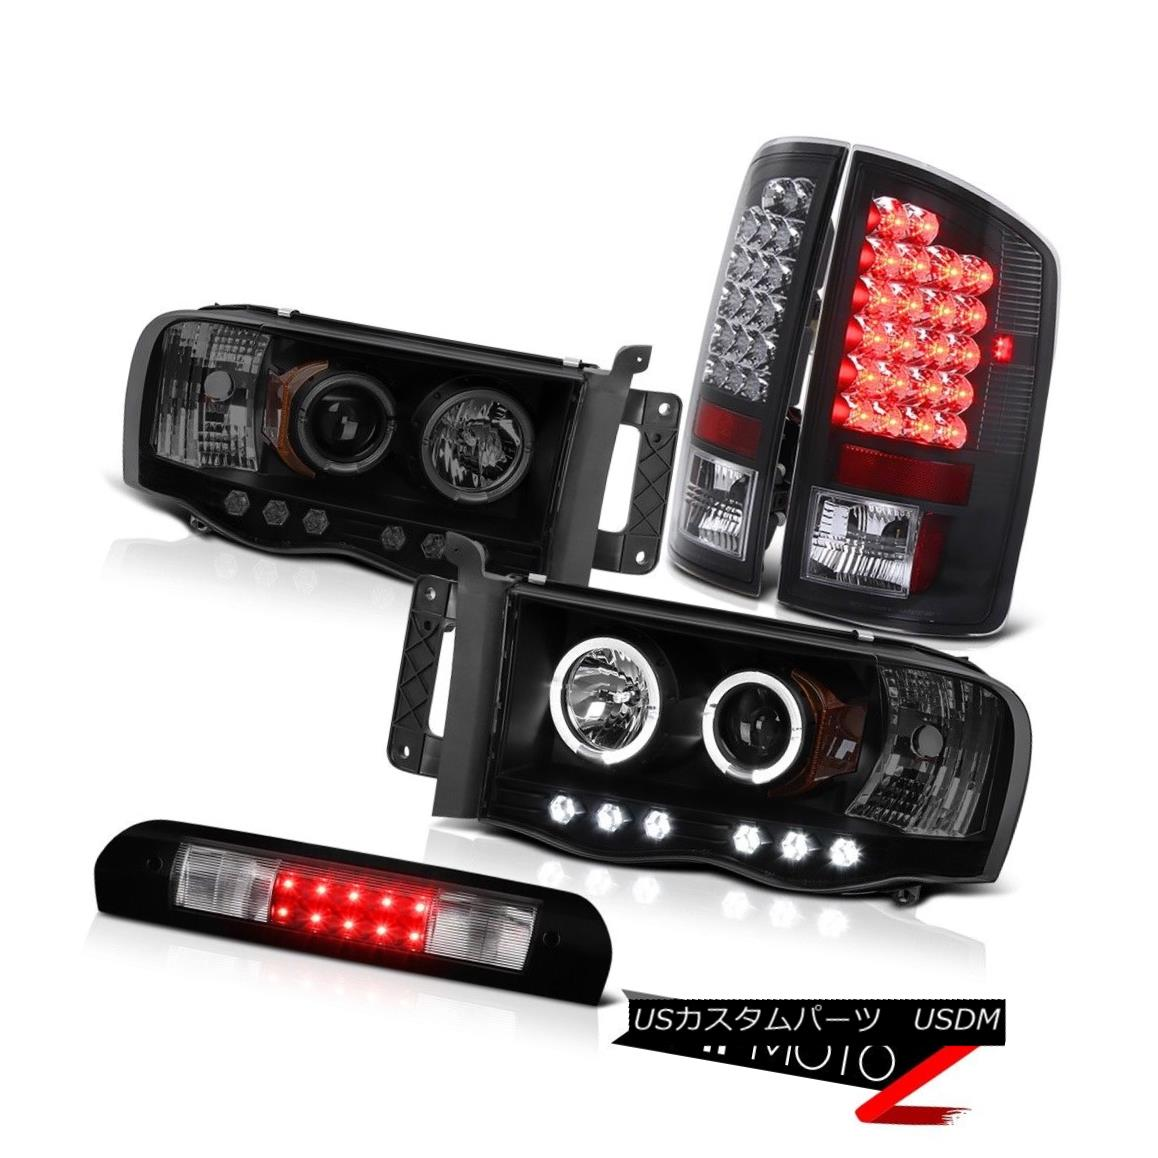 ヘッドライト SMD DRL Sinister Black Headlamps Bright LED Tail Lights 3rd 2002-2005 Ram 2500 SMD DRL Sinisterブラックヘッドランプ明るいLEDテールライト3rd 2002-2005 Ram 2500